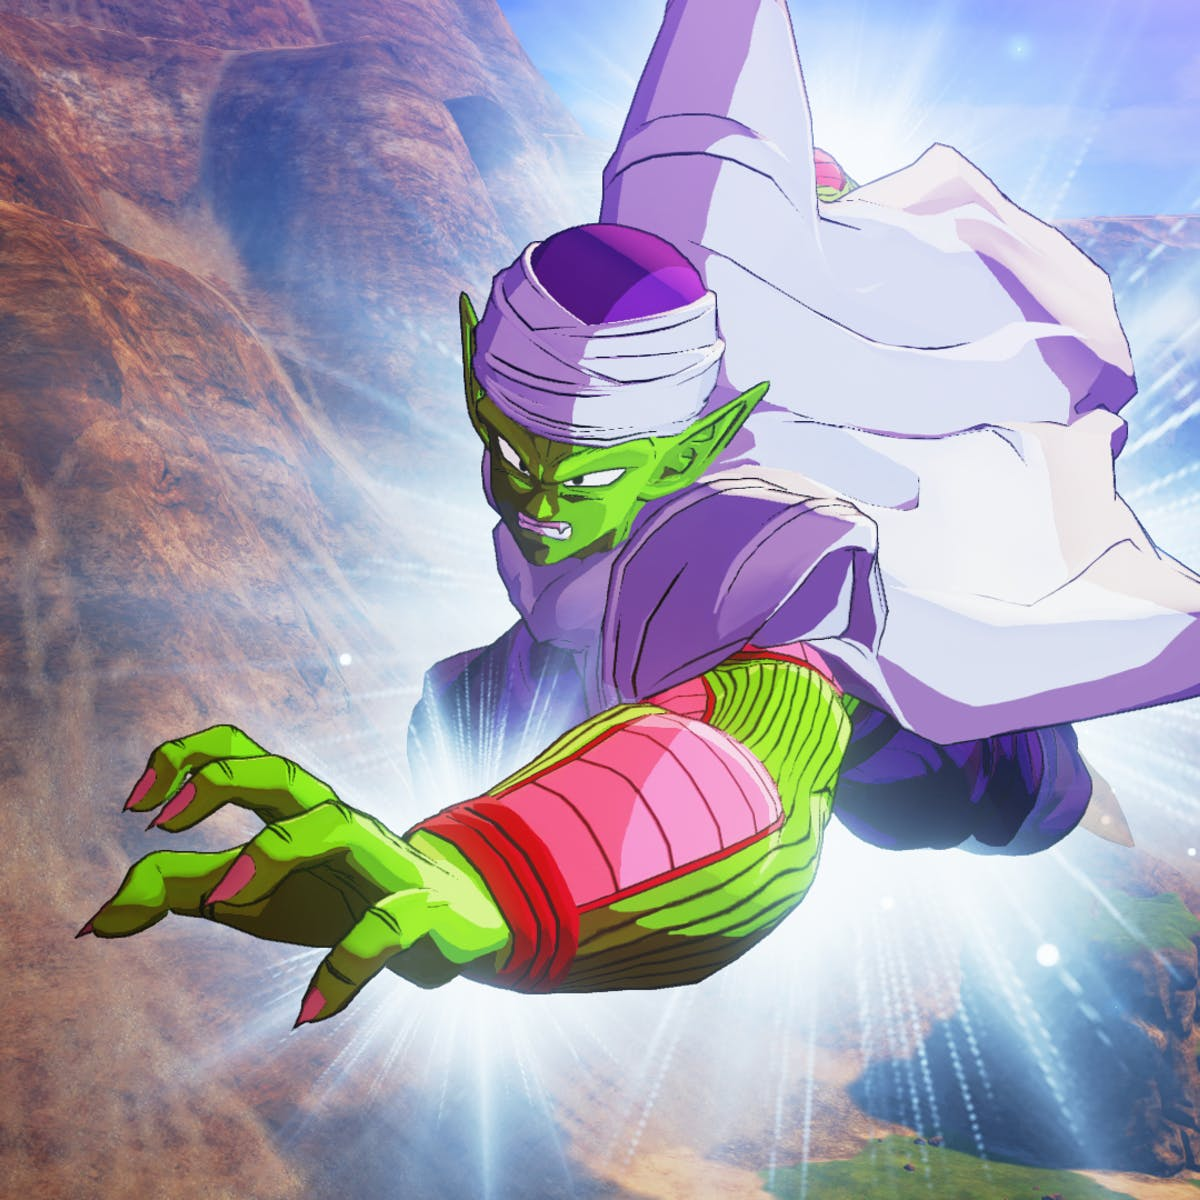 How to beat Great Ape Gohan as Piccolo in 'Dragon Ball Z: Kakarot'